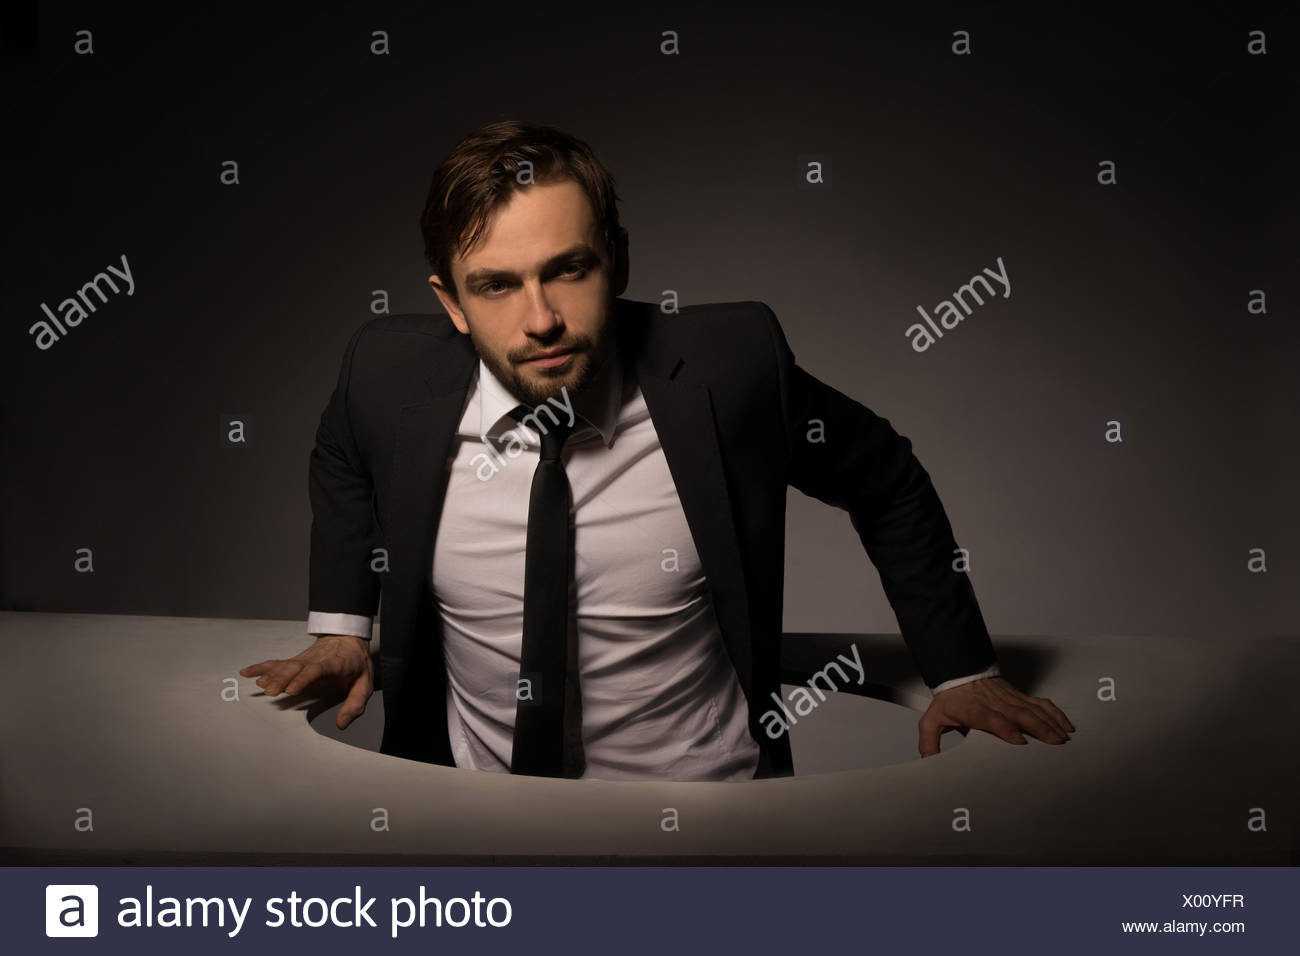 Handsome Young Bearded Businessman Climbing Out Of A Circular Hole In A White Wall In A Conceptual Image